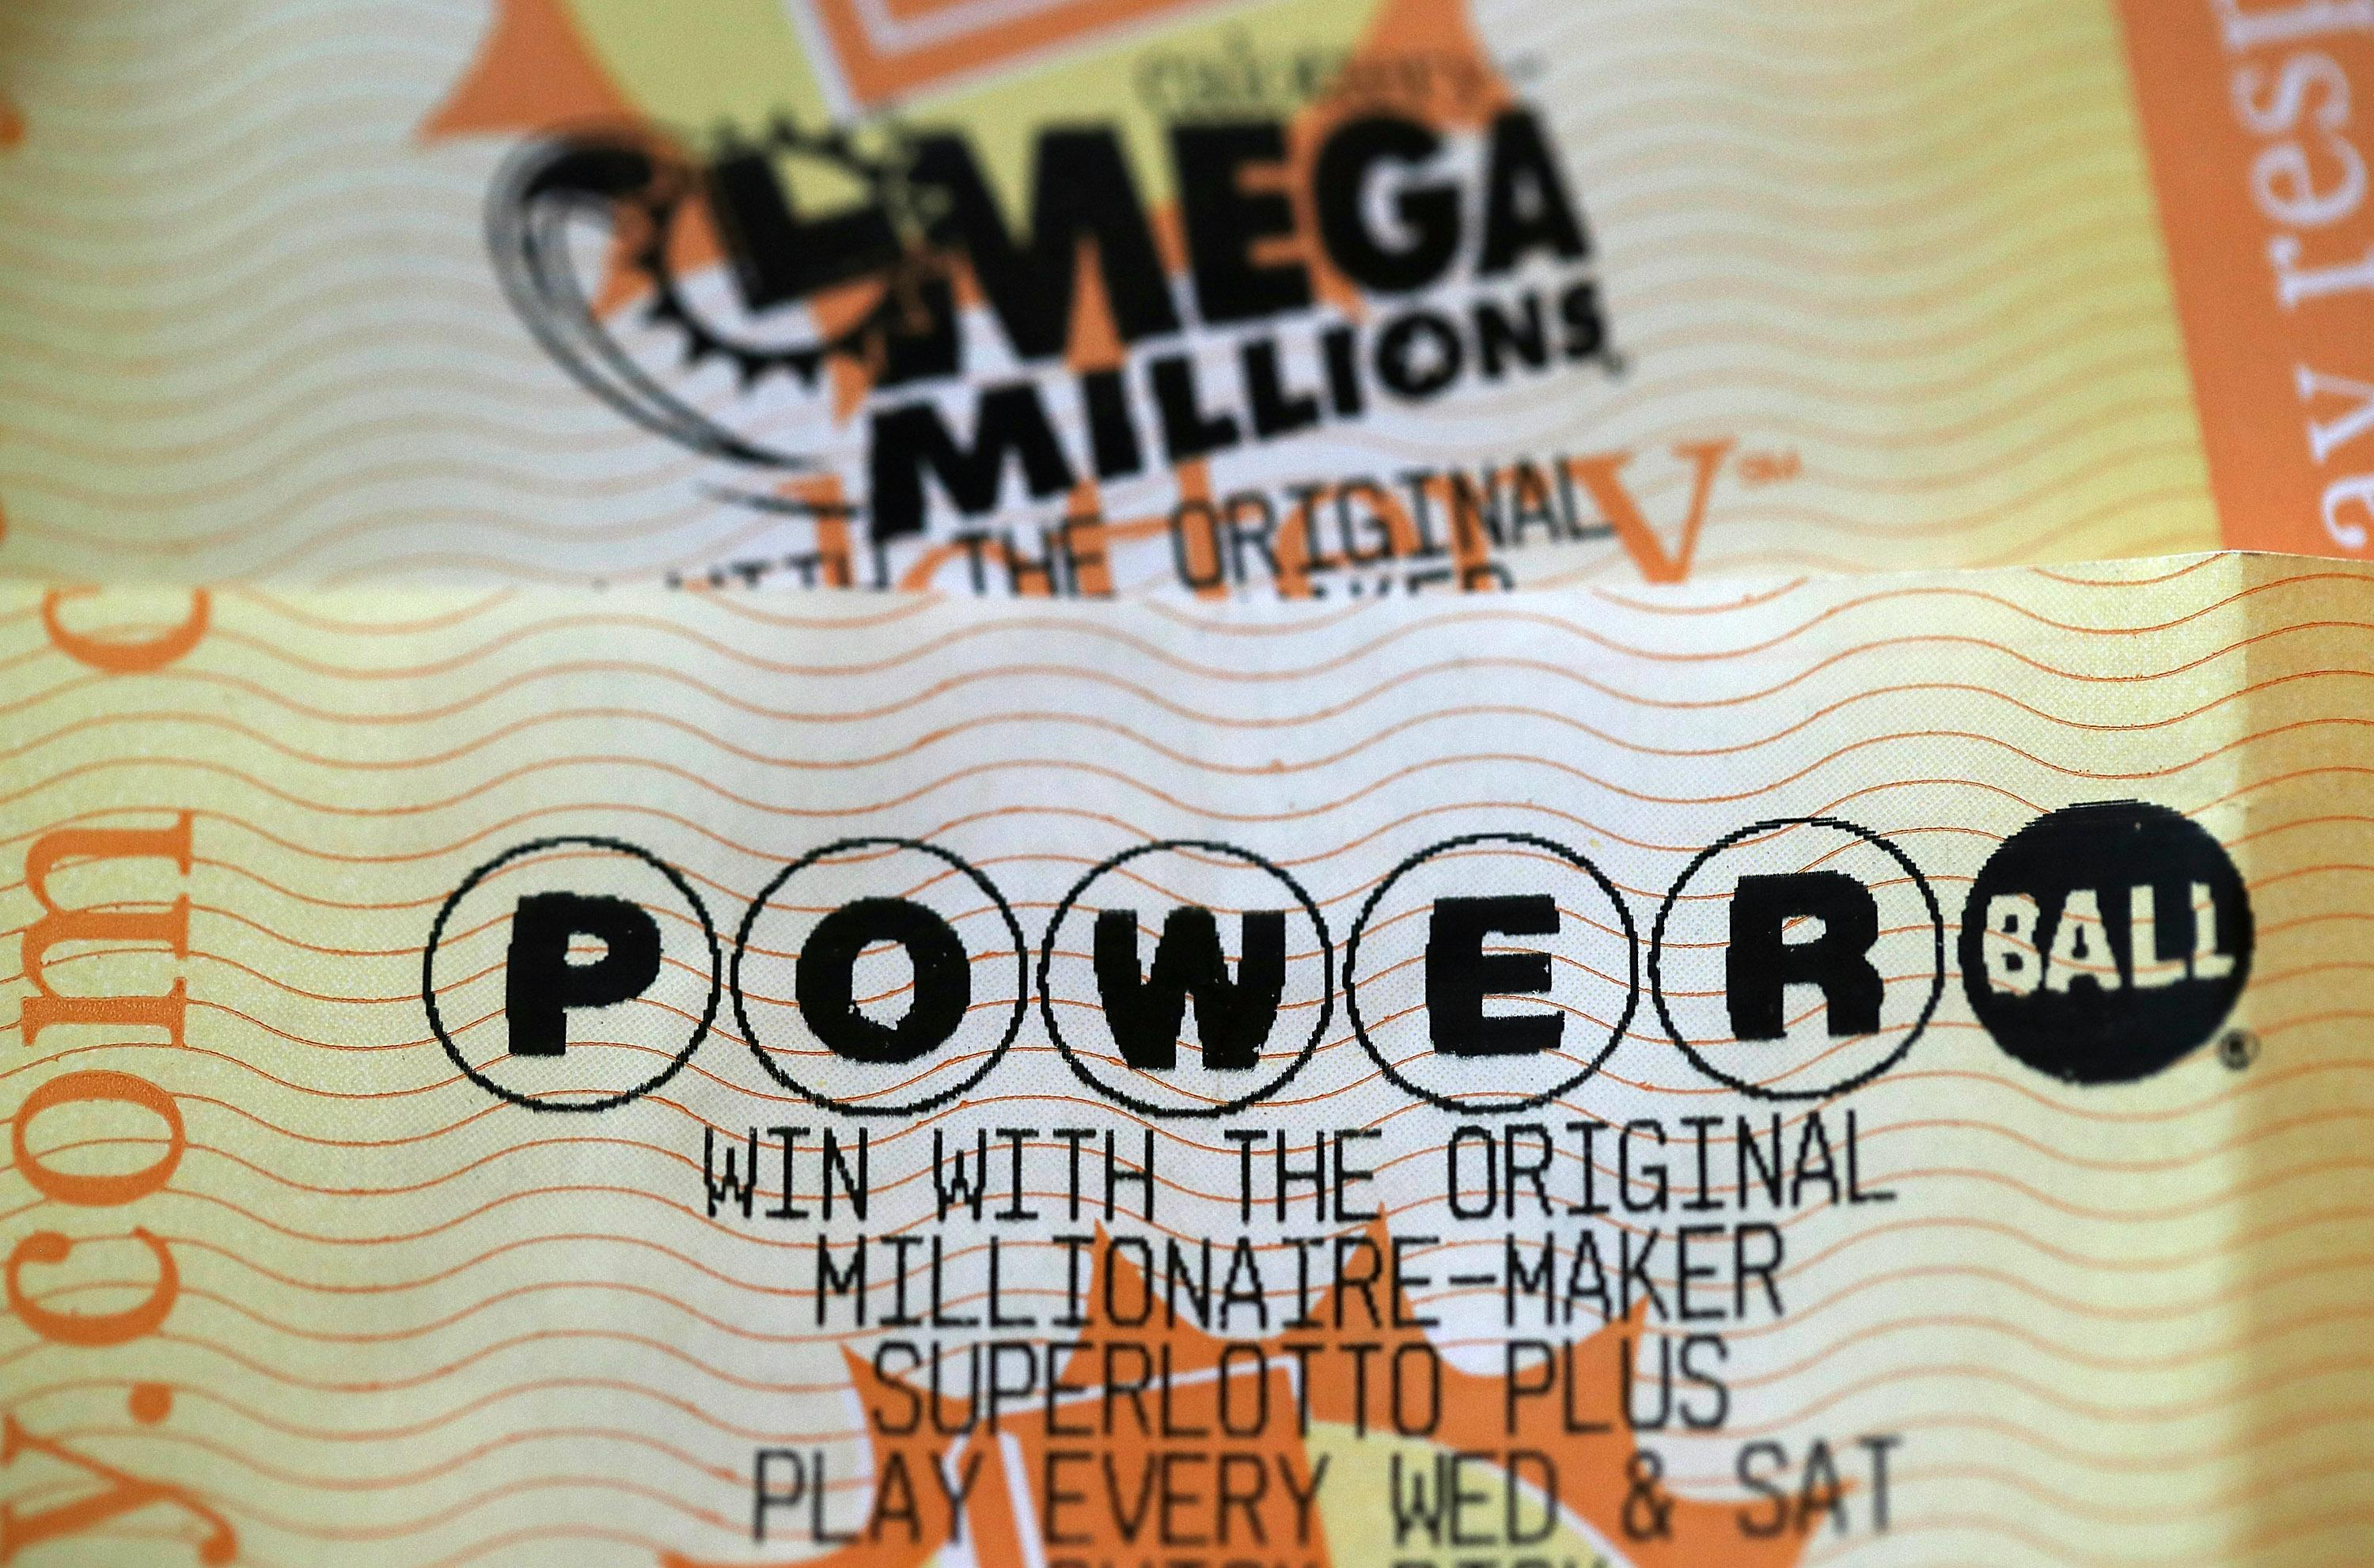 With no victor, Powerball jackpot soars to $550 million